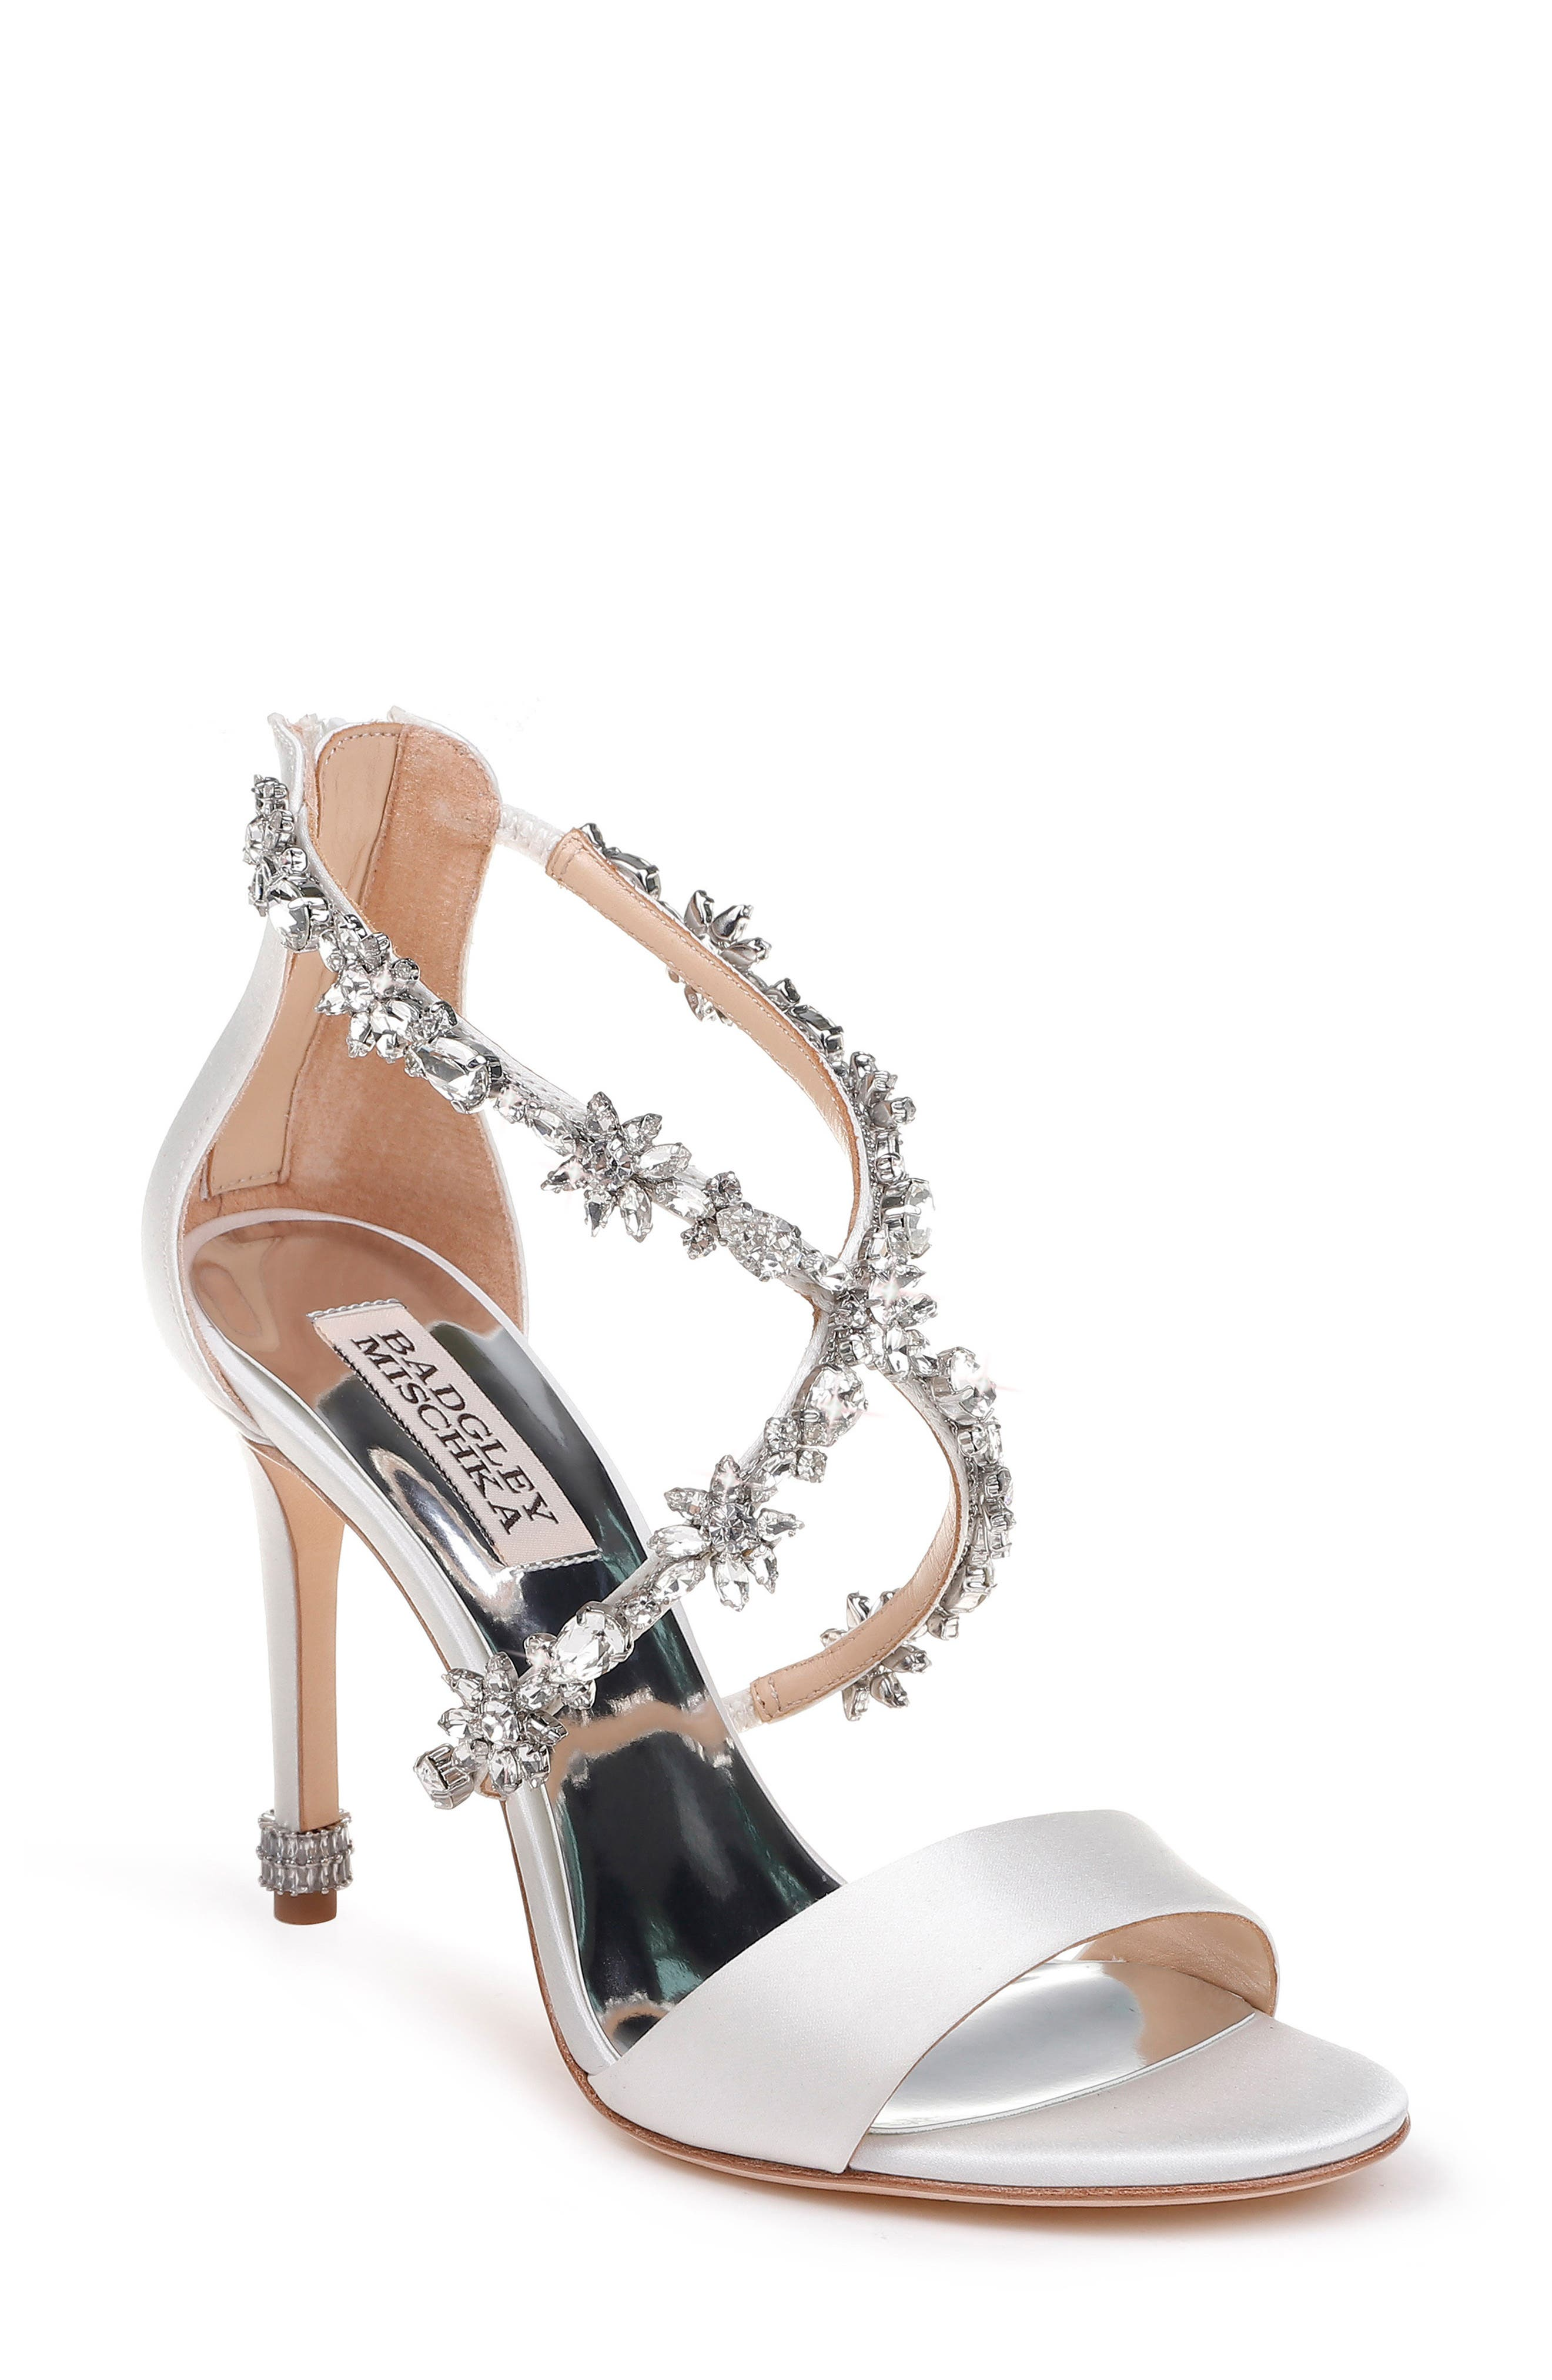 Crystal Embellished Sandal,                             Main thumbnail 1, color,                             SOFT WHITE SATIN